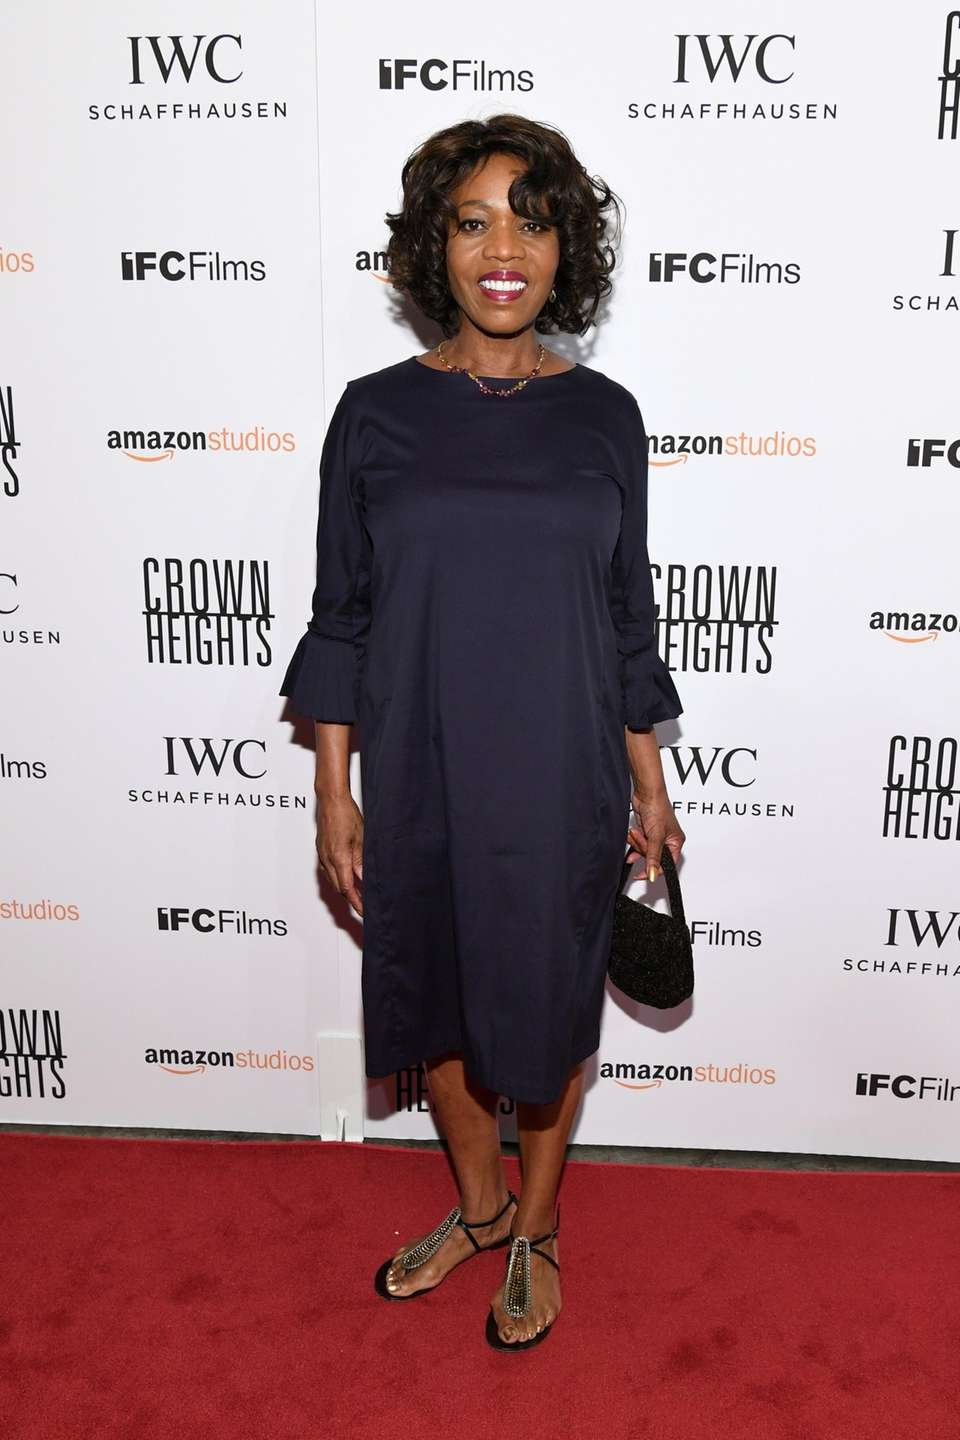 Alfre Woodard attends the New York premiere of